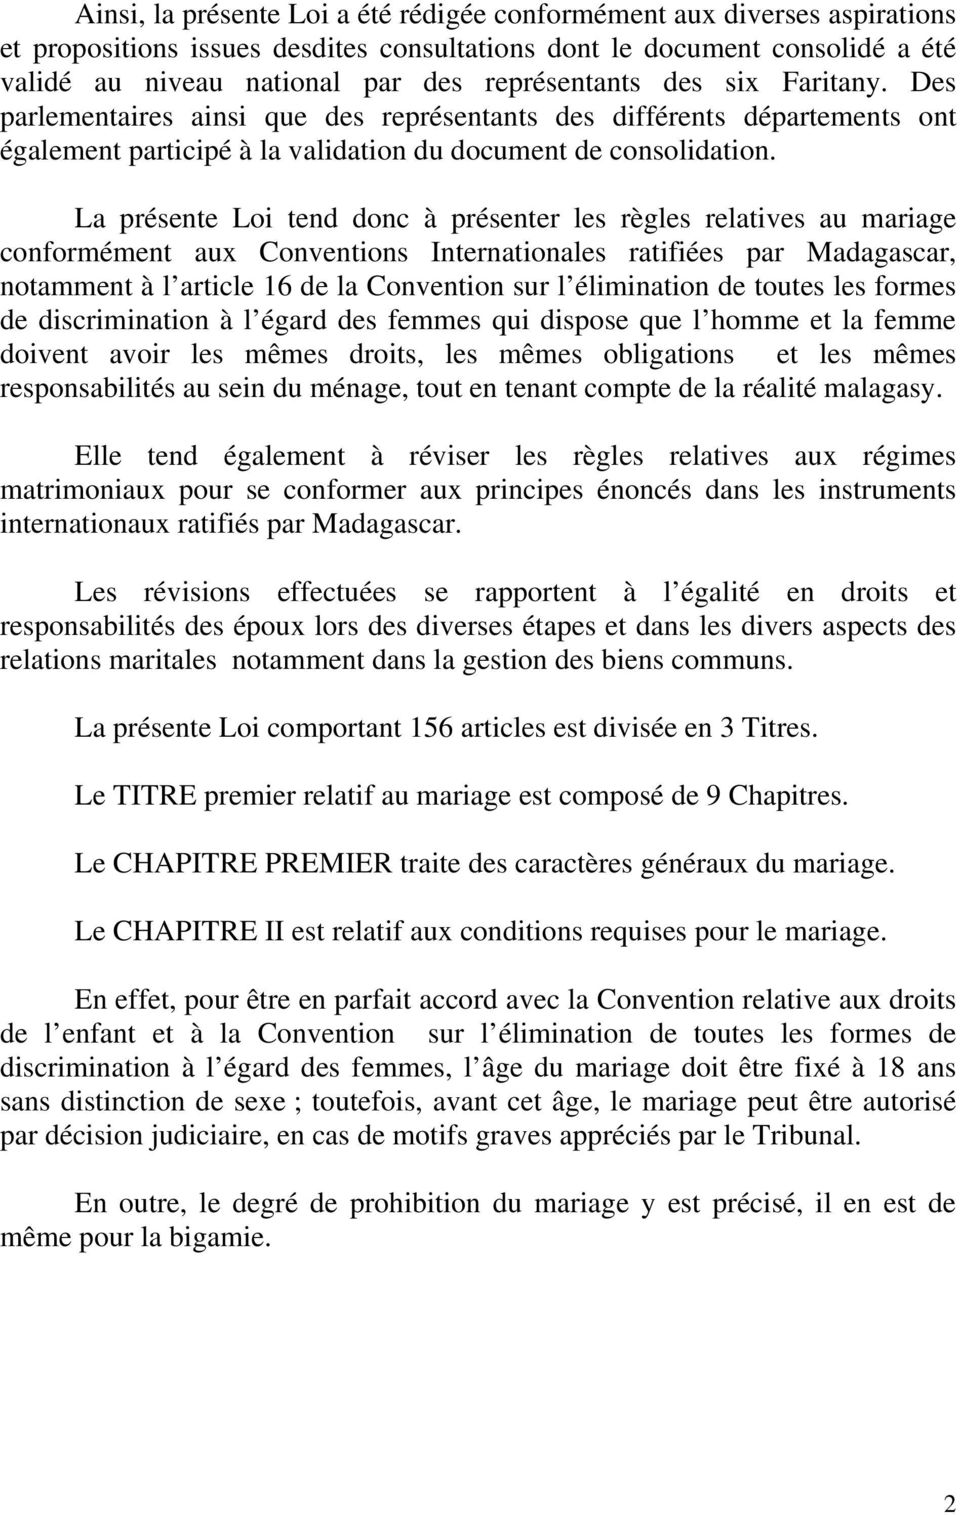 La présente Loi tend donc à présenter les règles relatives au mariage conformément aux Conventions Internationales ratifiées par Madagascar, notamment à l article 16 de la Convention sur l